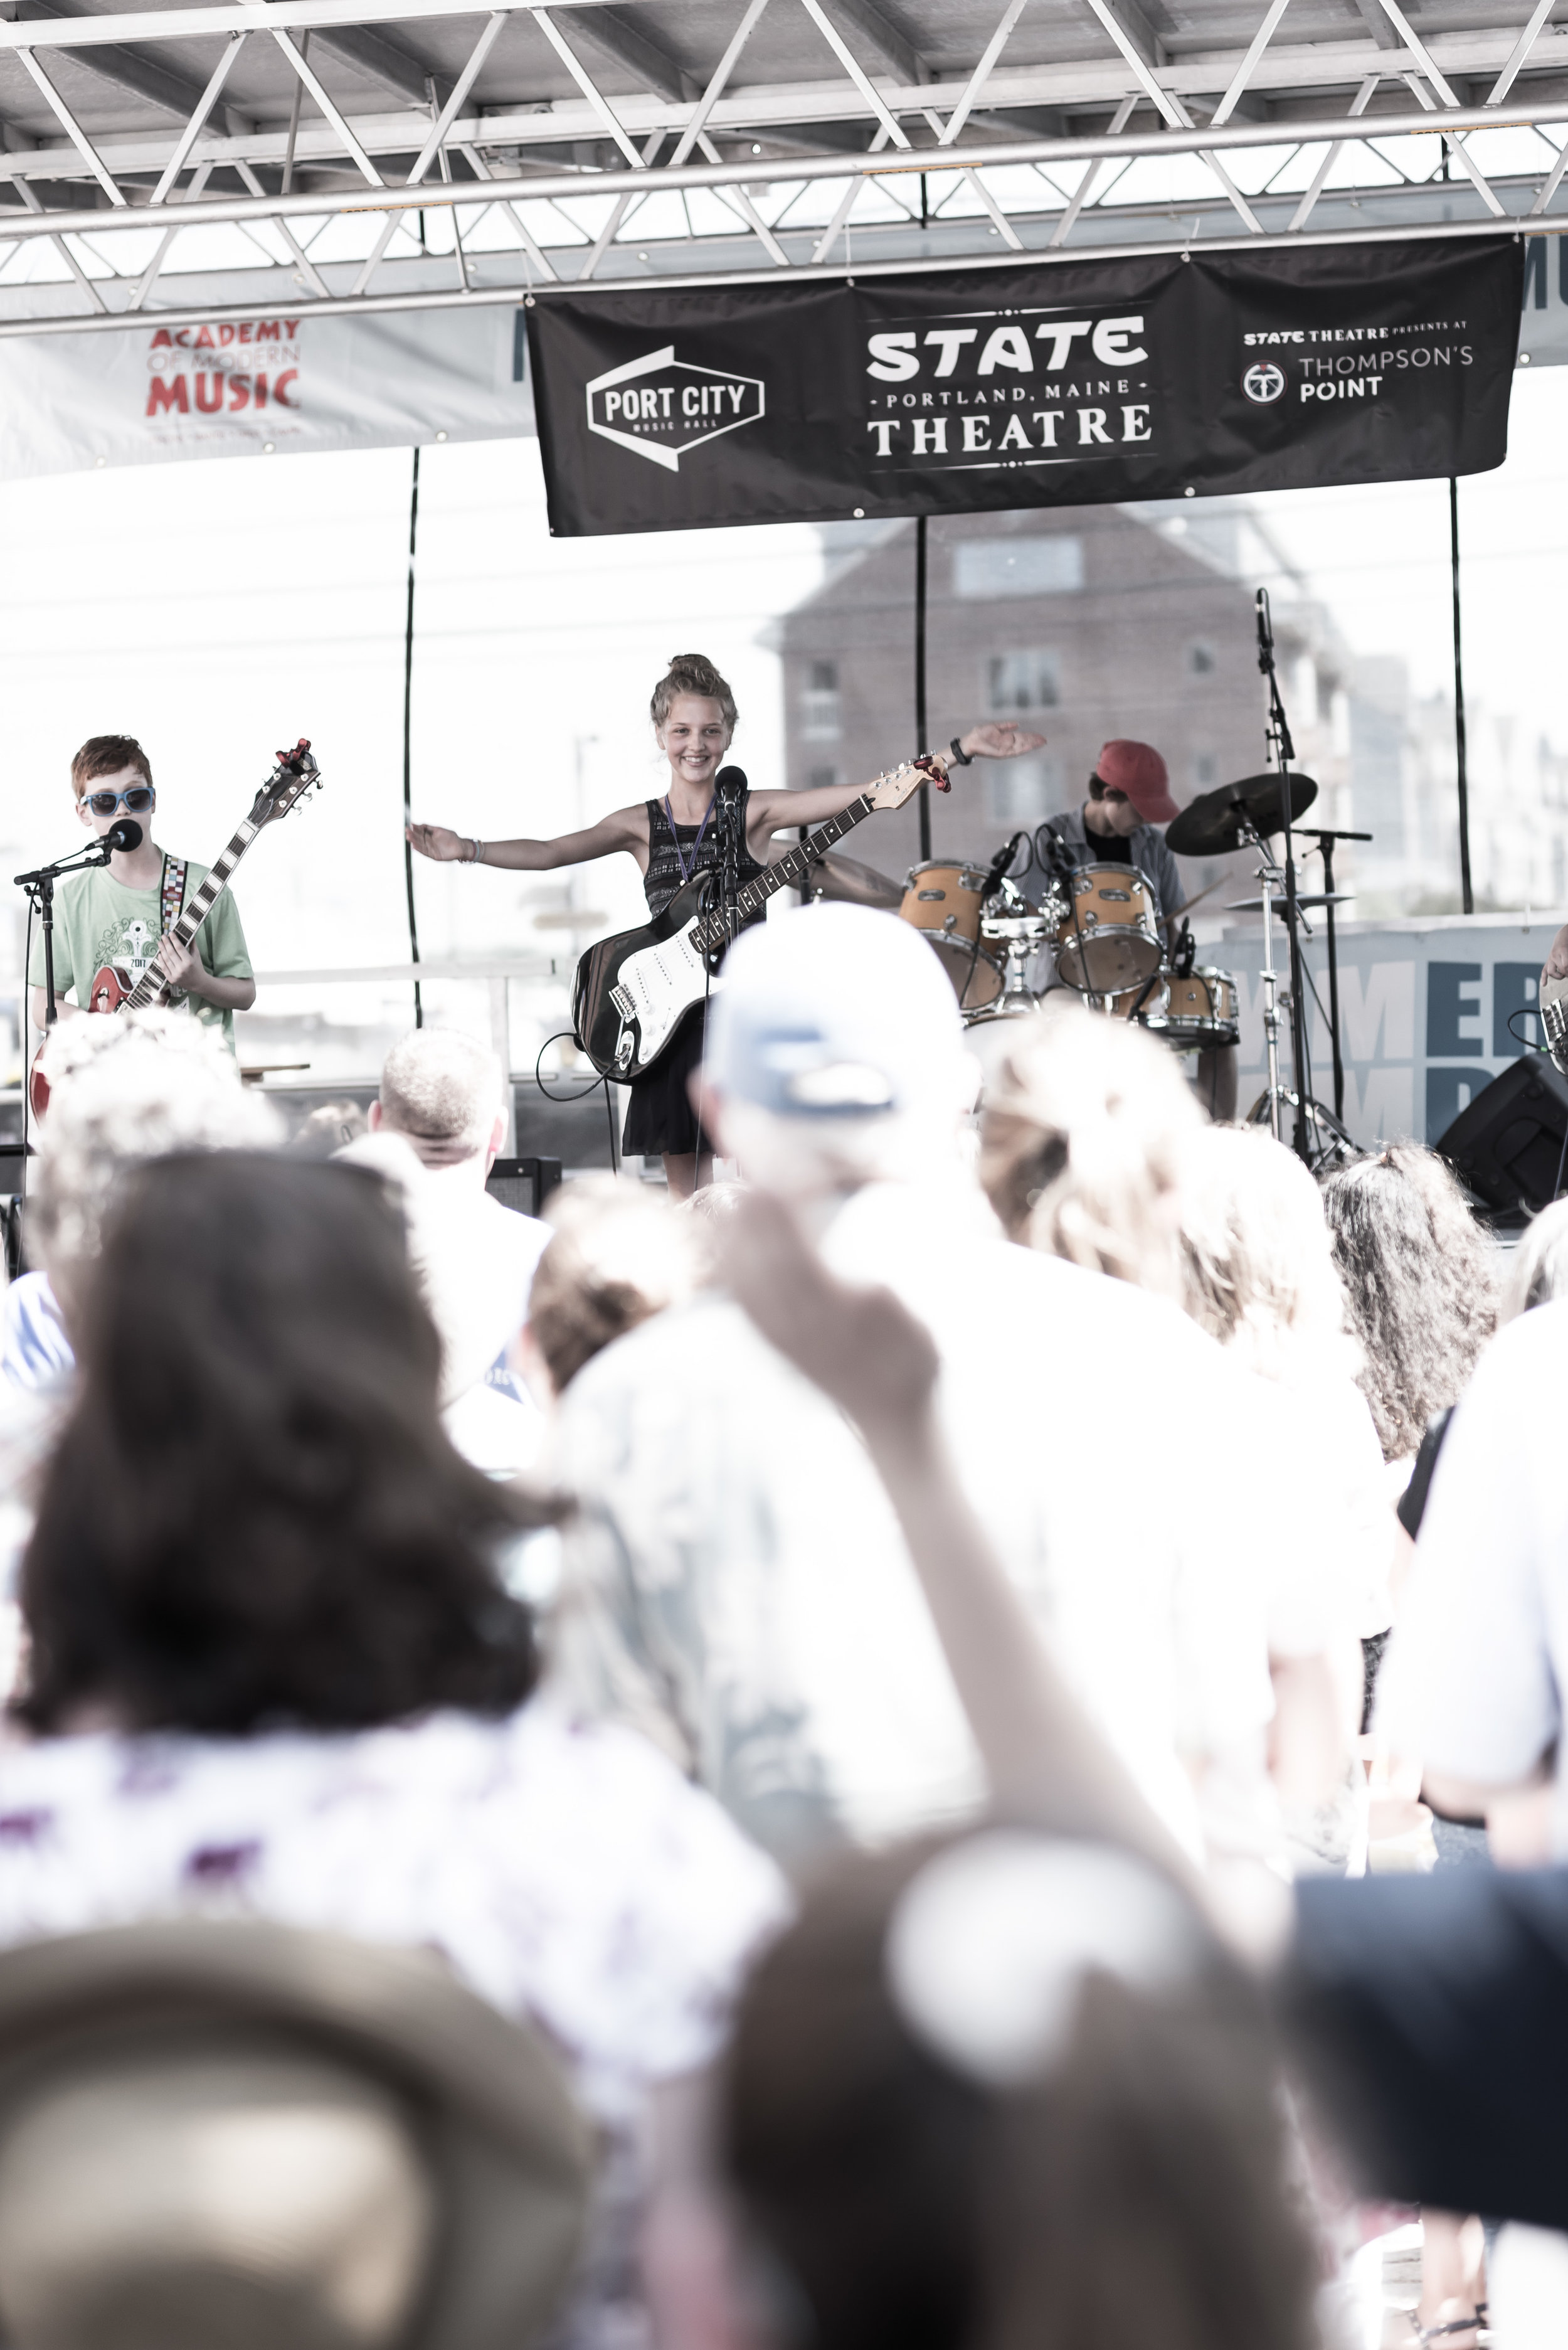 Student bands regularly rock the stages of popular local venues including Bayside Bowl, Aura, Port City Music Hall, and many others. -